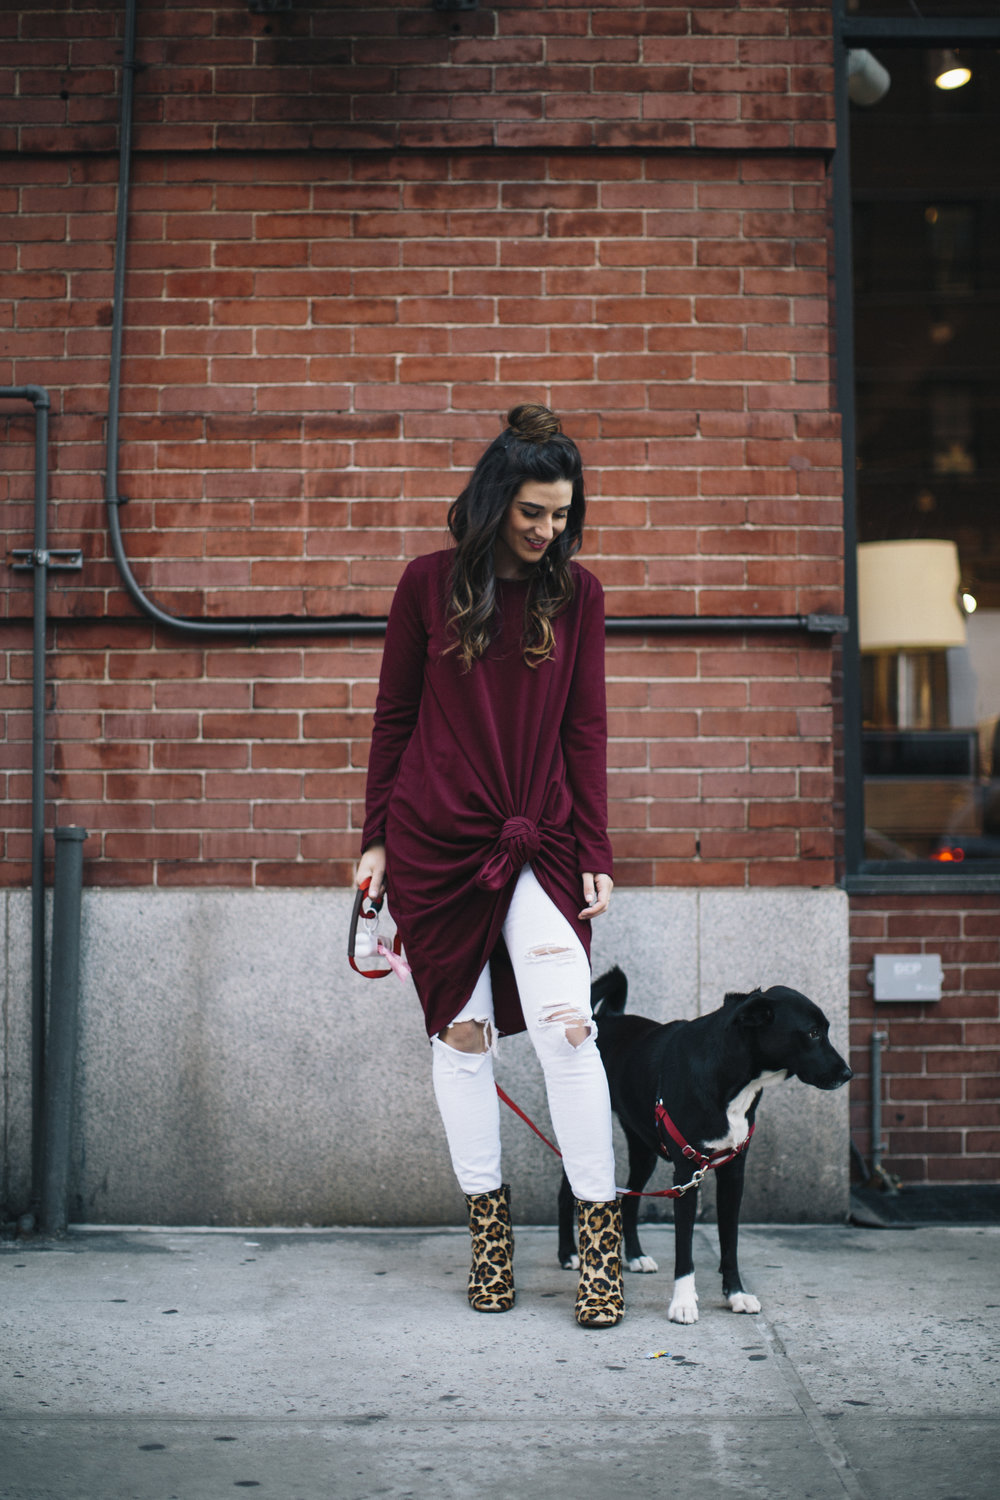 Knotted Dress + Ripped White Jeans 4 Ways To Build Connections Louboutins & Love Fashion Blog Esther Santer NYC Street Style Blogger Outfit OOTD Trendy Red Maroon Burgundy Winter Color Leopard Coach Booties Pants Girl Women Bun Topknot Hair Shoes Wear.jpg